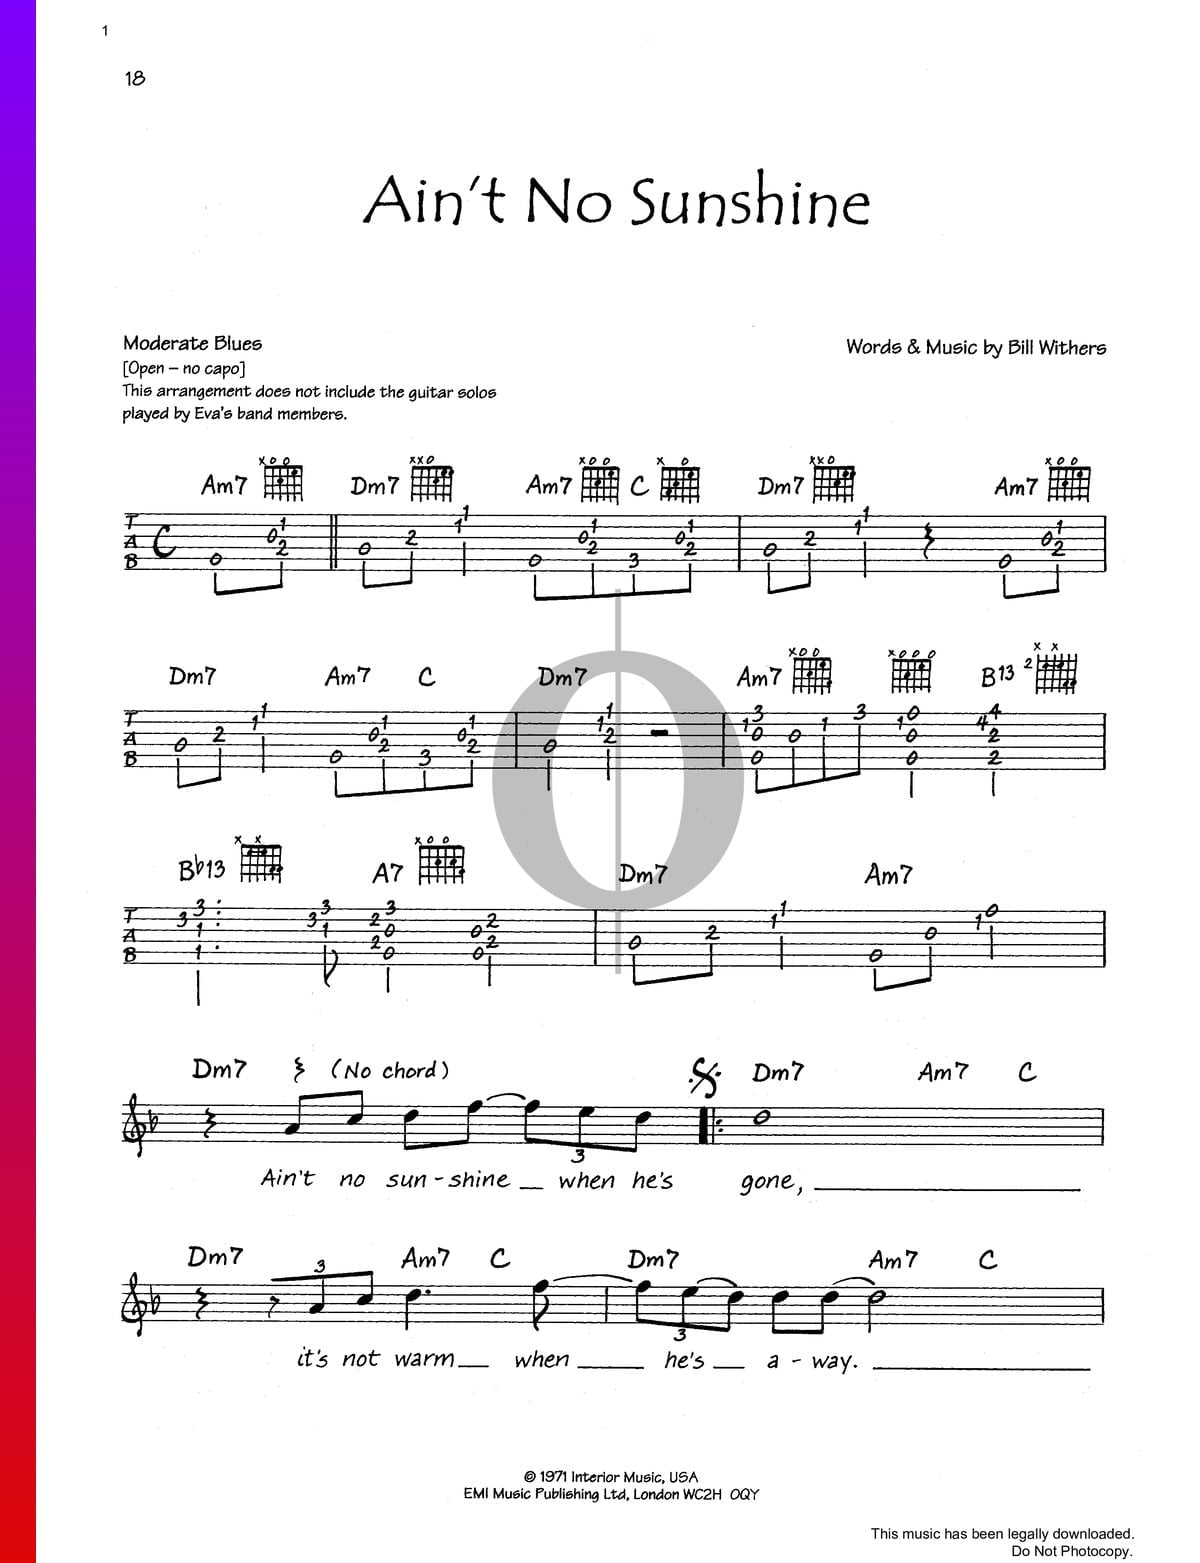 Ain T No Sunshine Sheet Music Piano Voice Guitar Pdf Download Streaming Oktav Start when he says shes the first time aint no sunshine when shes gone it goes like this, in the i know i know part, no guitar. ain t no sunshine sheet music piano